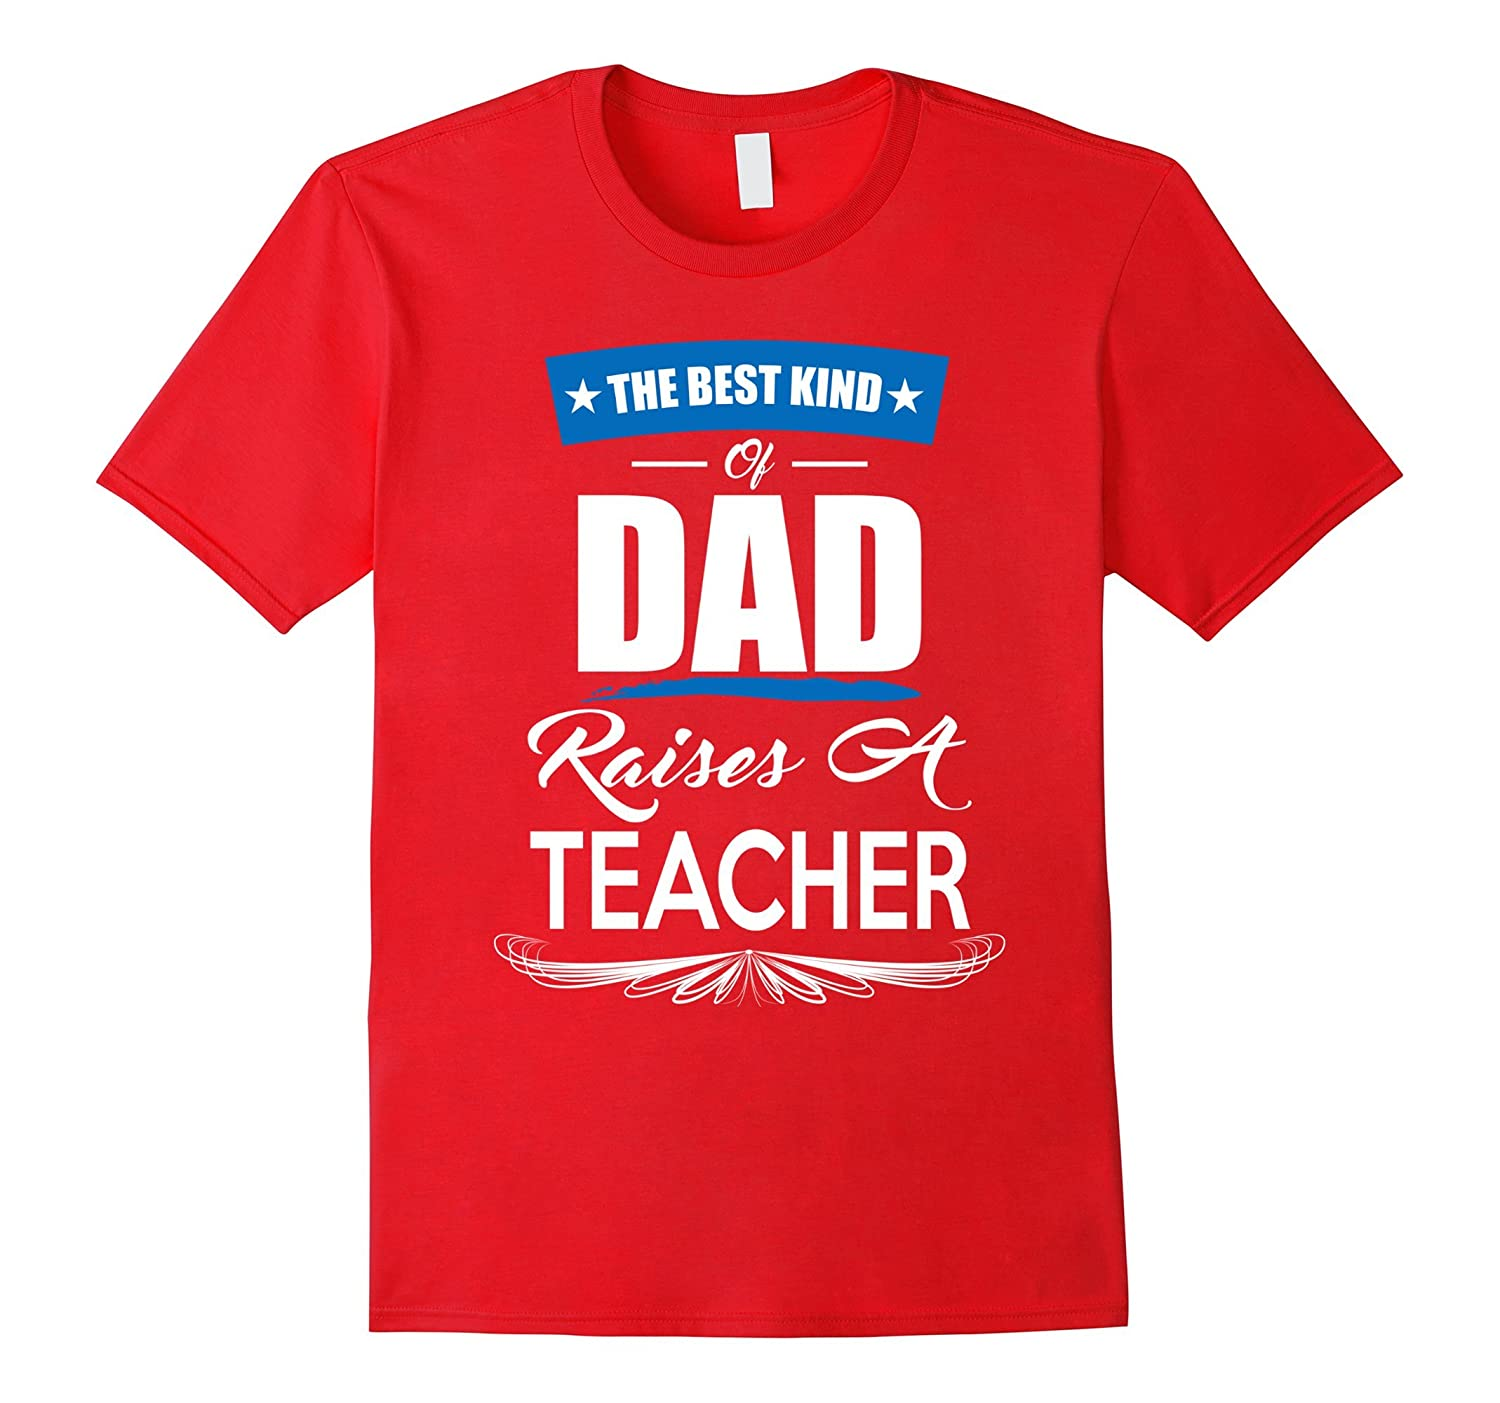 Mens The Best Kind Of Dad Raises A Teacher T-shirt